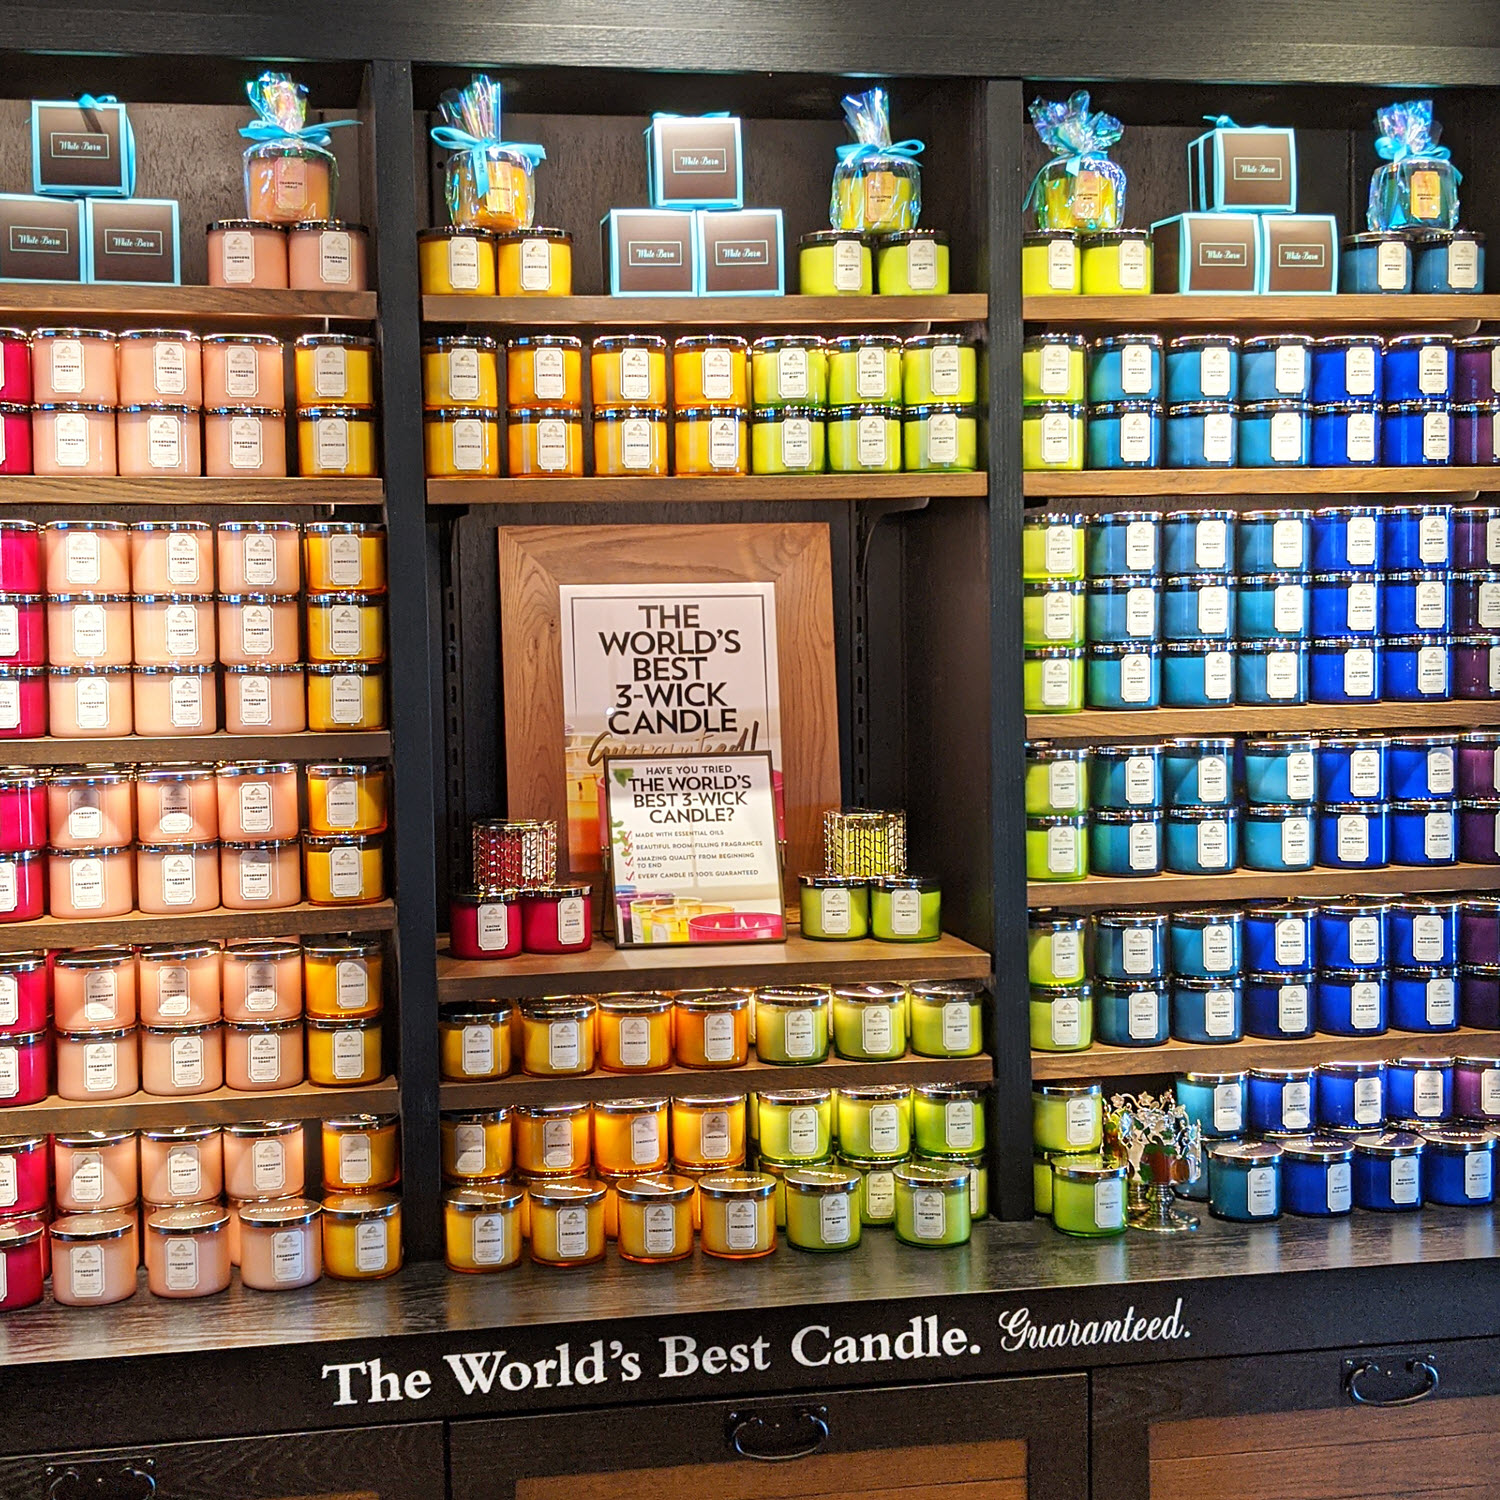 CANDLE SALE ALERT: Get Ready for ALL the Fall Bath & Body Works Candles! from Bath & Body Works/White Barn